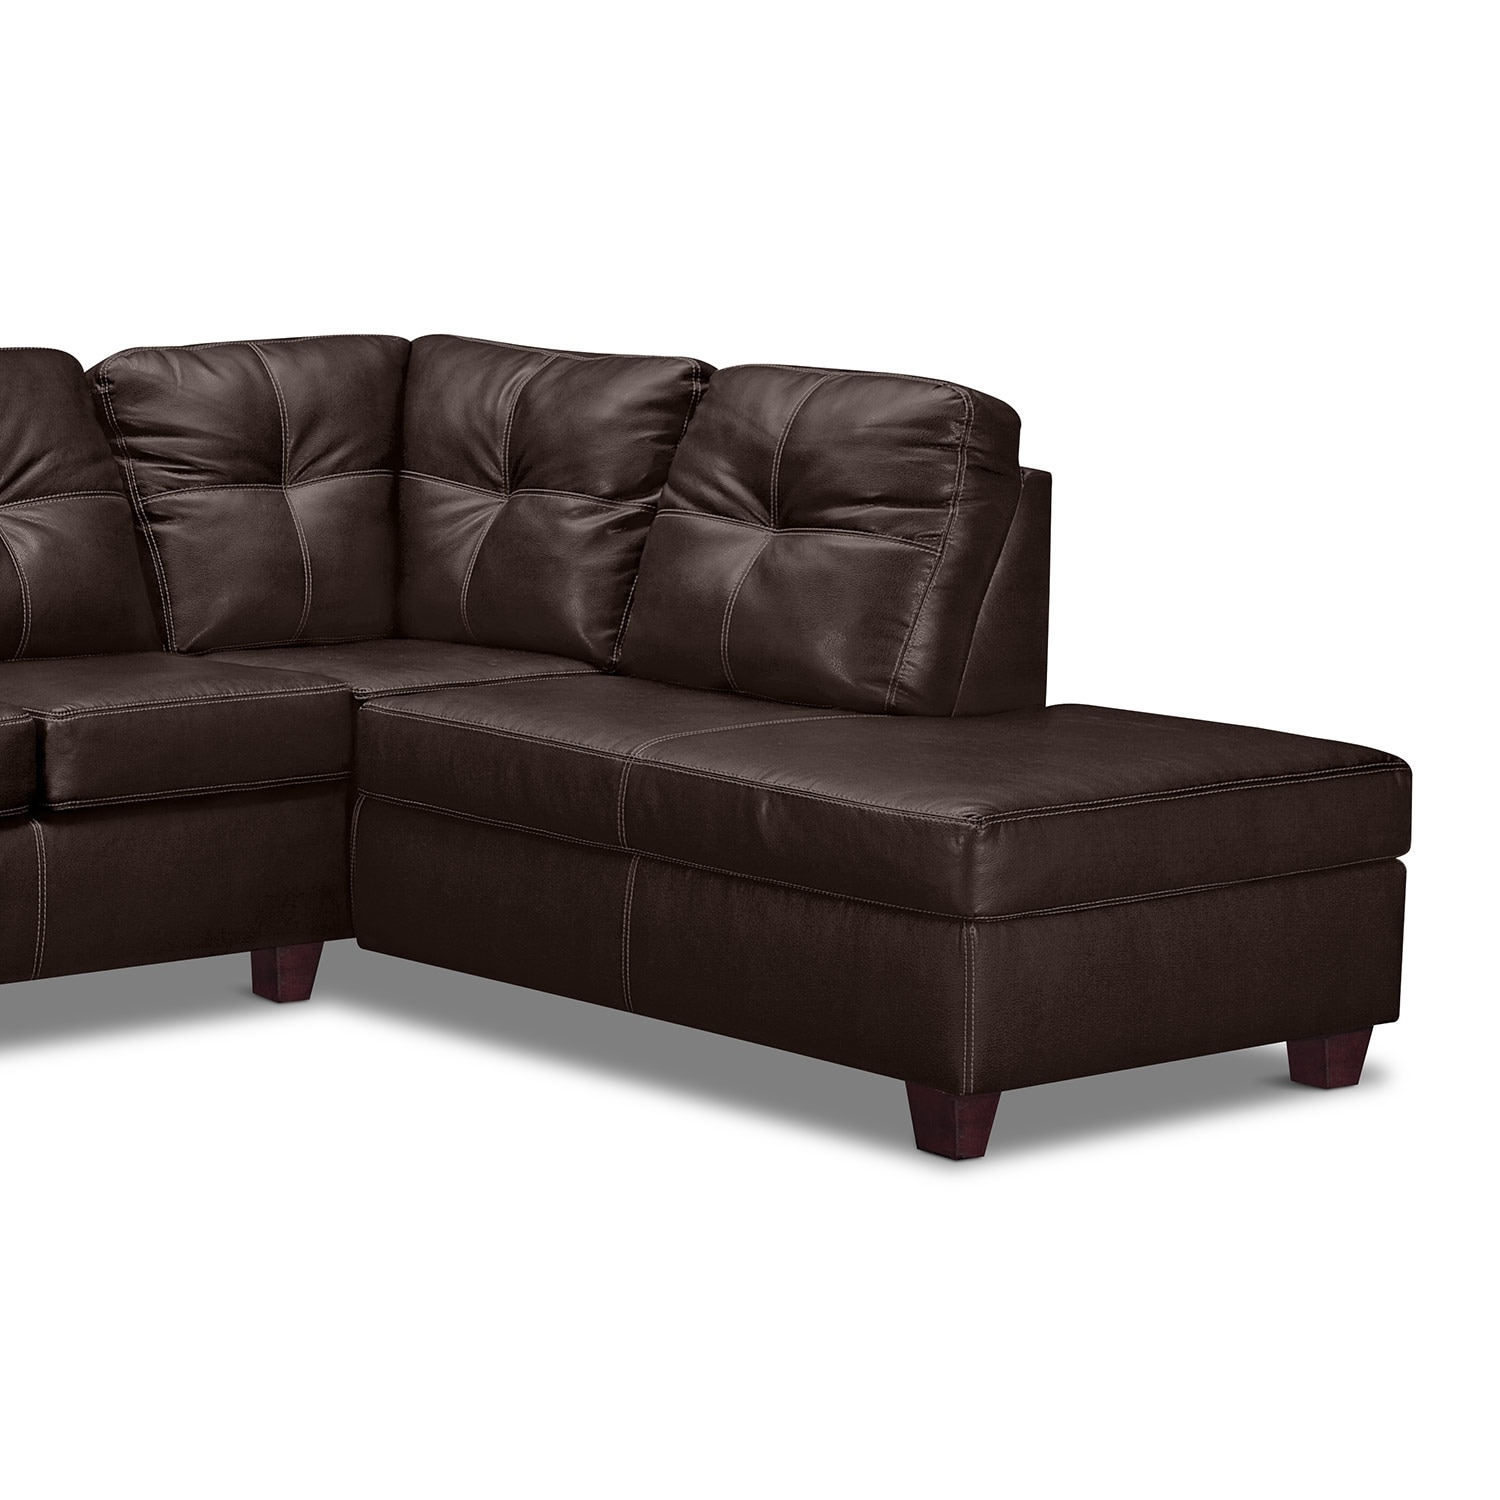 Ricardo 2 piece sectional with right facing chaise brown for Brown sectionals with chaise